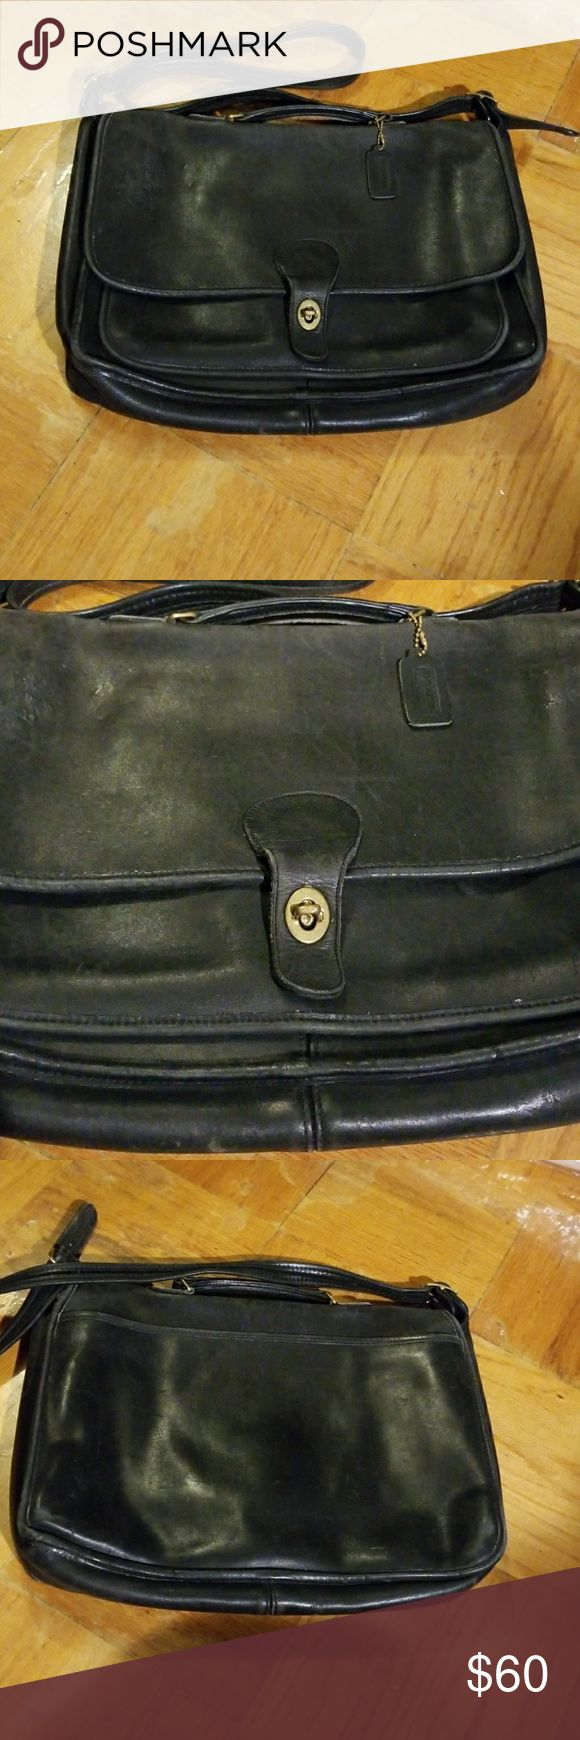 Briefcase Classic black Coach briefcase, recently loved with plenty of Love left to give,  shows a bit wear but looks good for its age Coach Bags